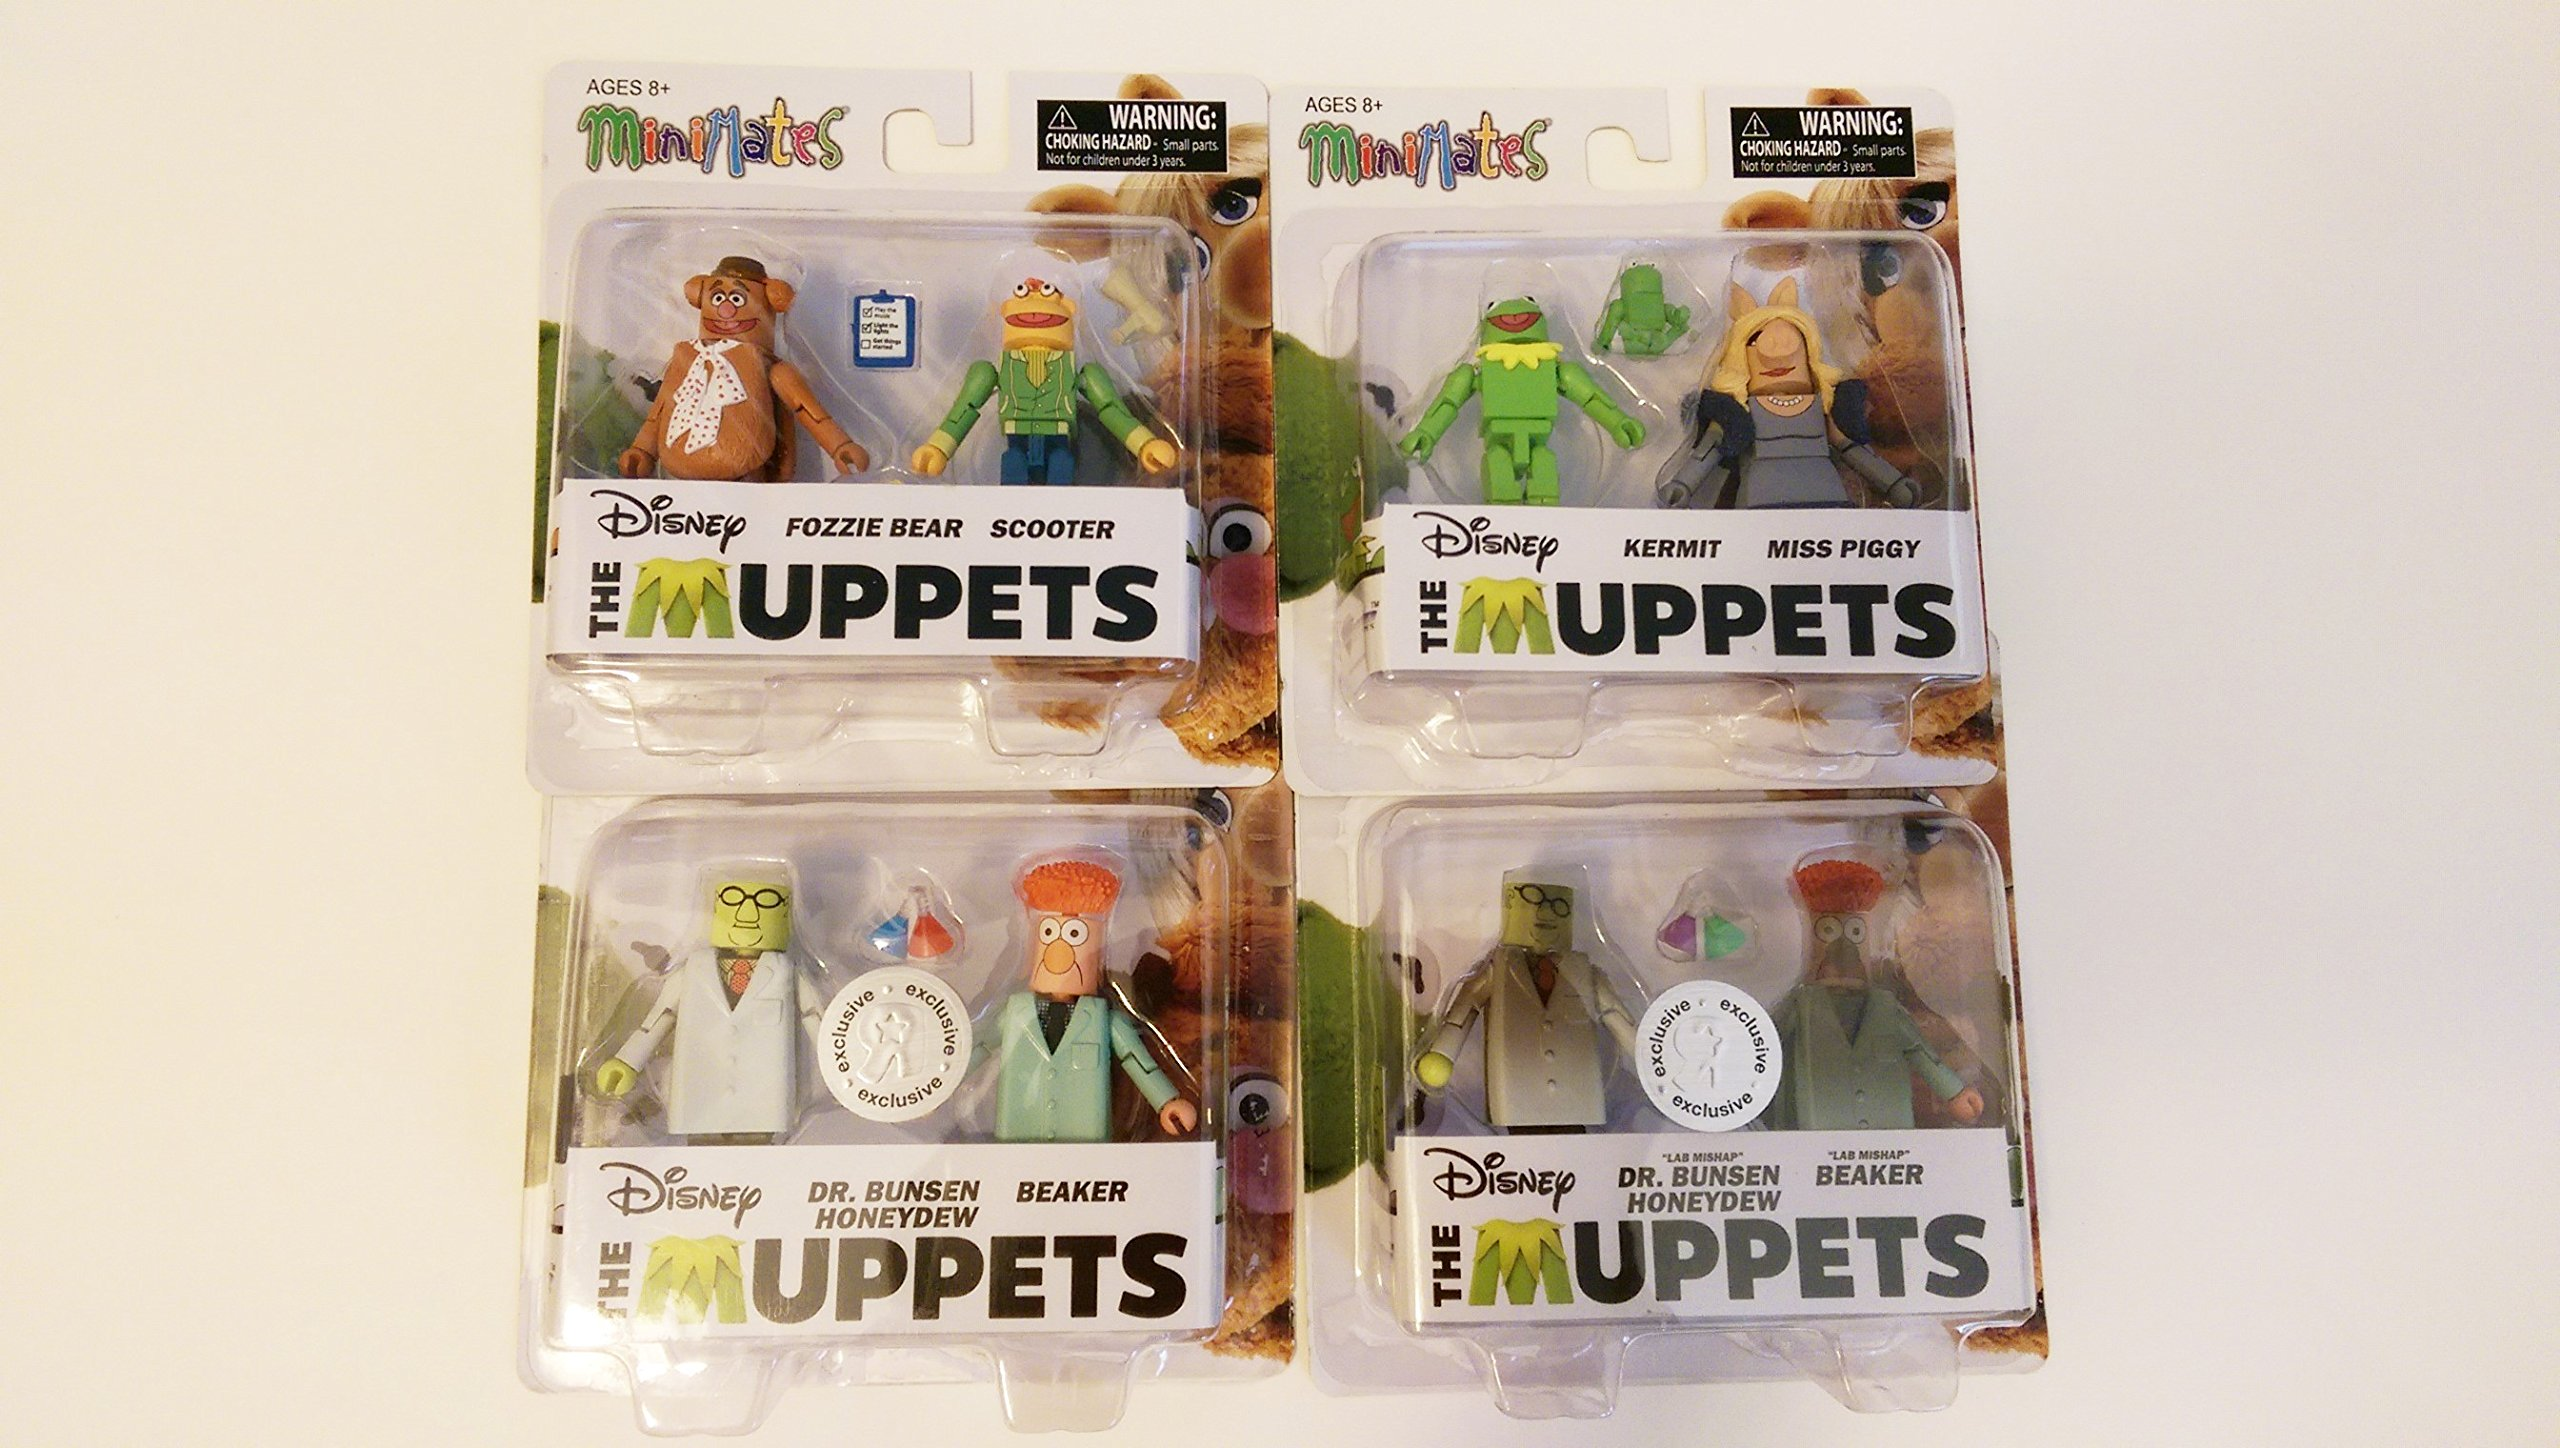 The Muppets Minimates Set of 8 ''Lab Mishap'' - Kermit, Miss Piggy, Fozzie Bear, Scooter, Dr. Bunsen Honeydew, Beaker, Lab Mishap Dr. Bunsen Honeydew, Lab Mishap Beaker by The Muppets